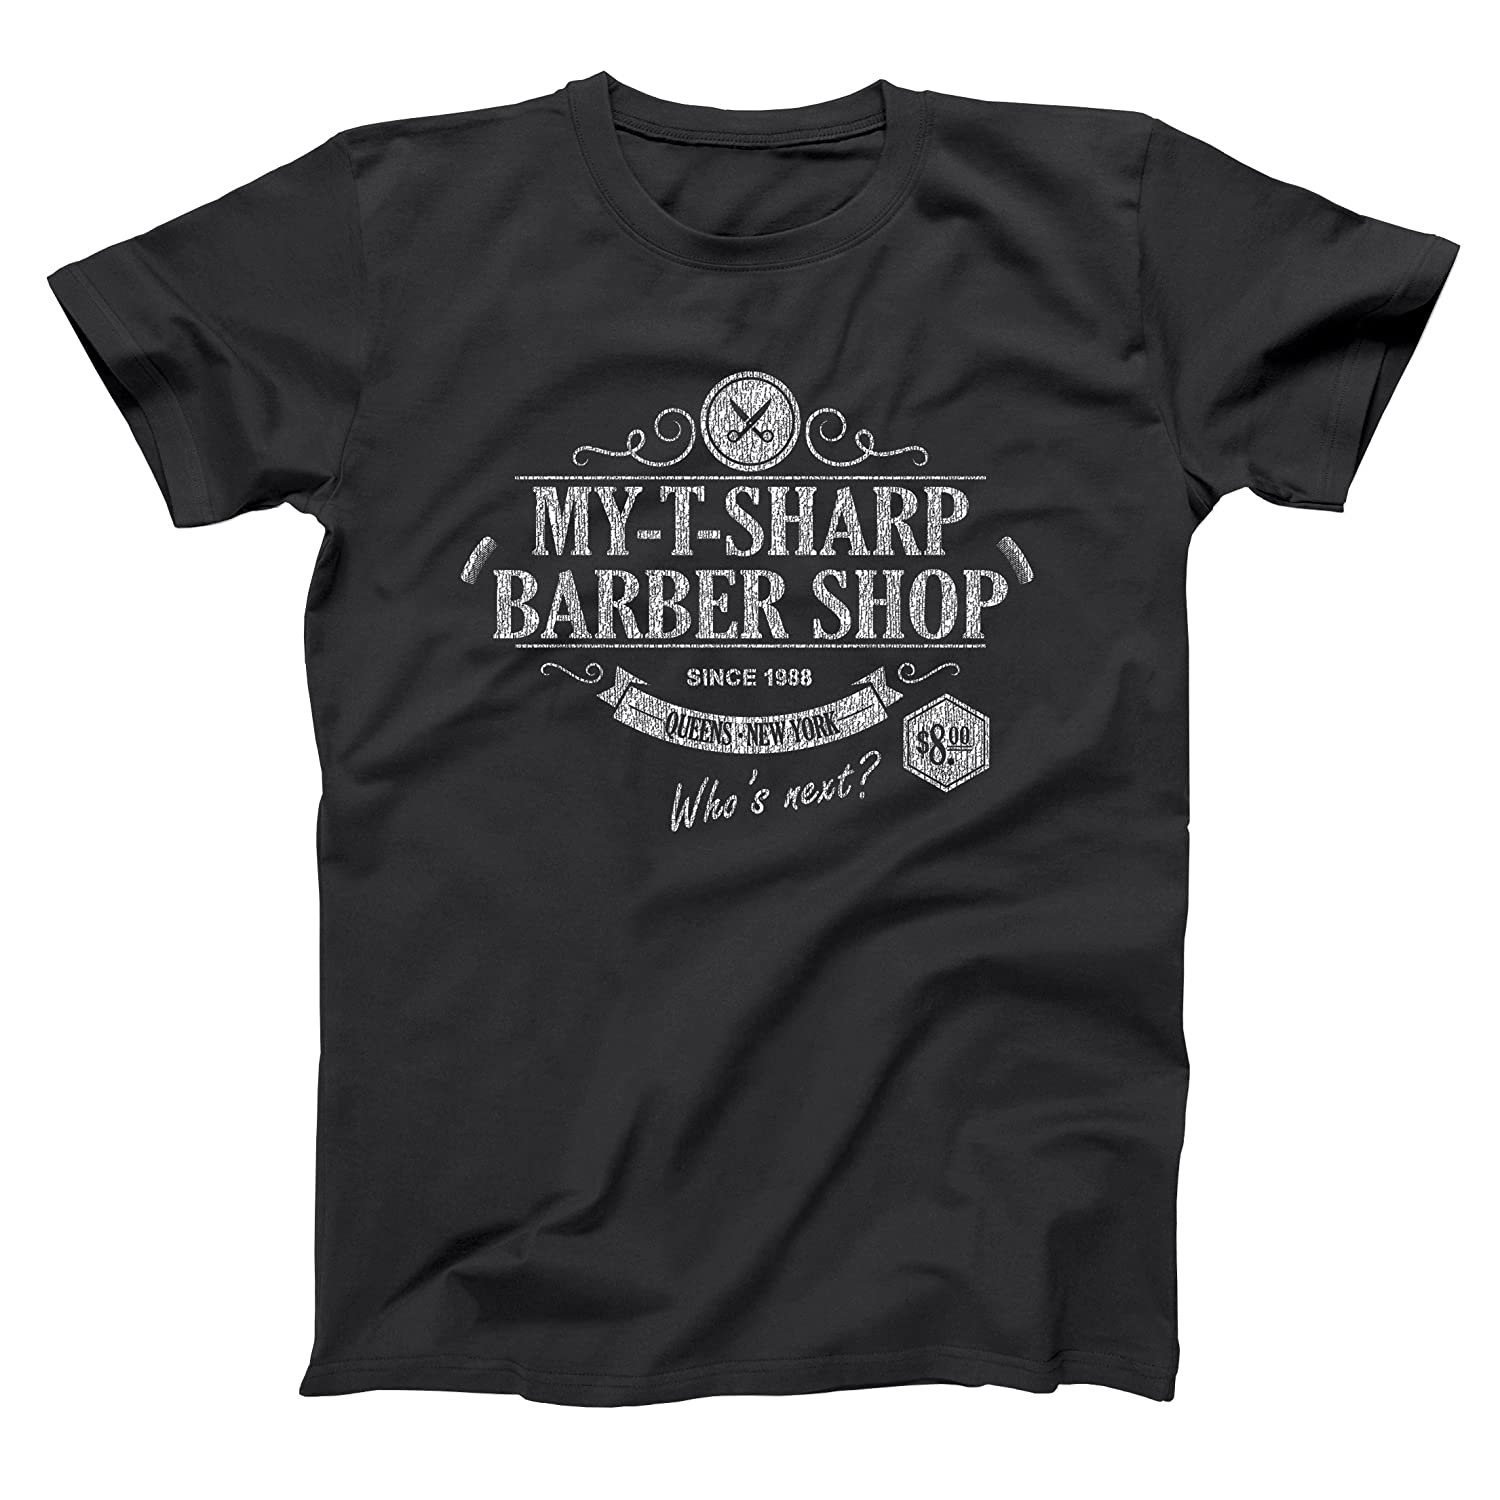 Amazon.com: My T Sharp Barber Shop Funny Classic Barbershop New York Queens  Coming America Old School 80s 90s Movie Humor Mens Shirt: Clothing